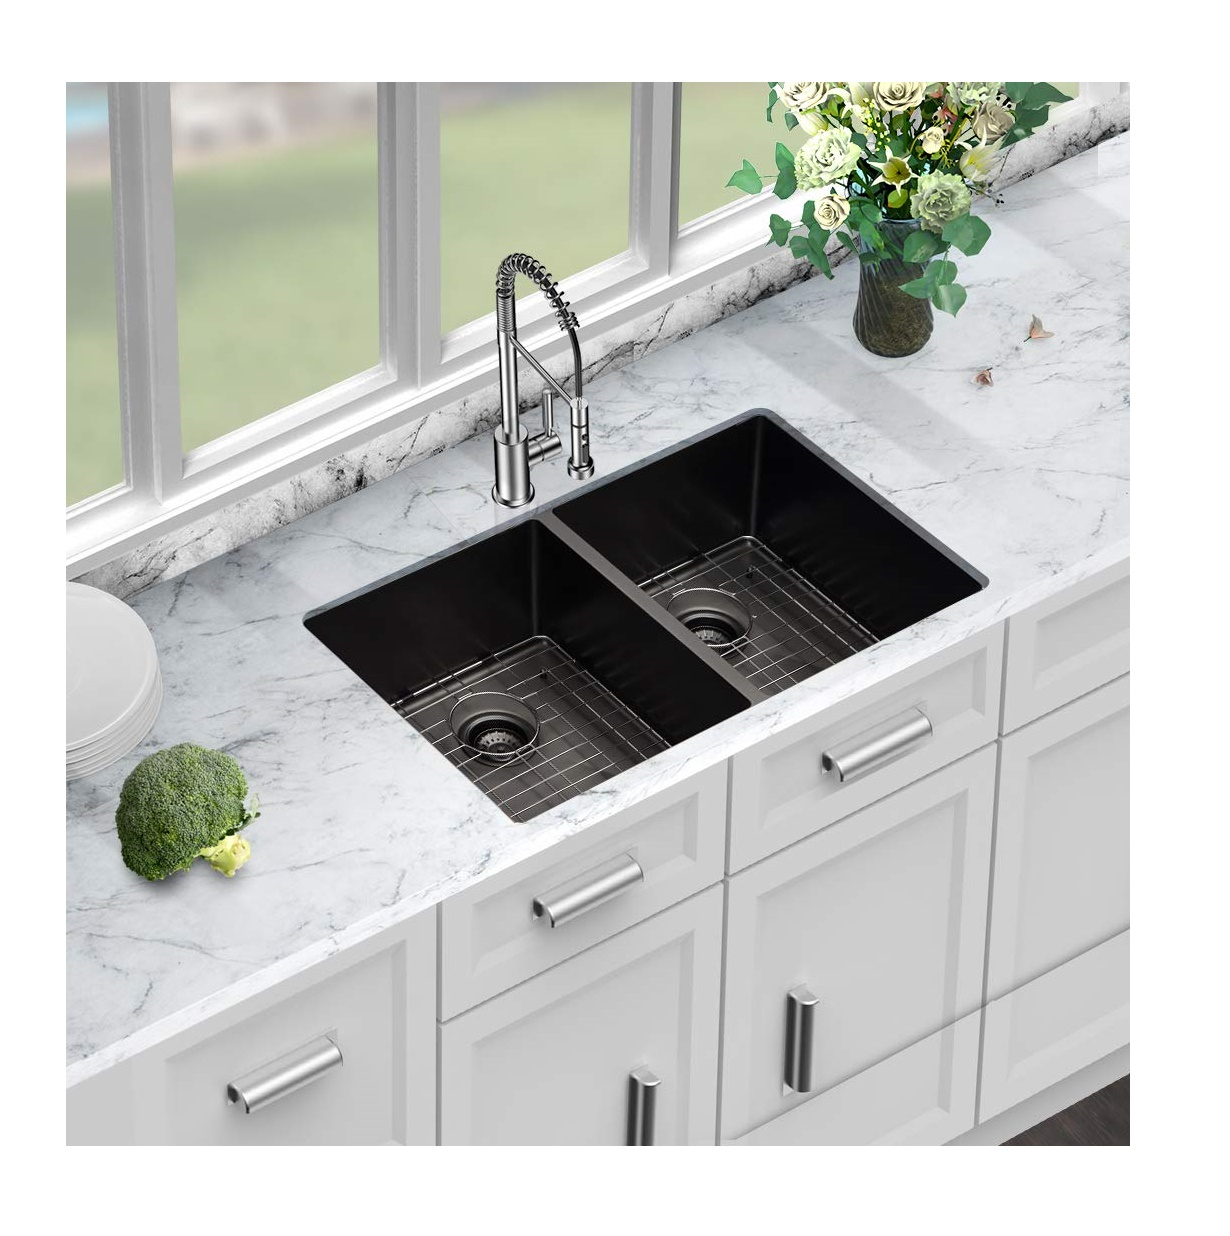 S2 Utility Handmade 304 Ss Deep Double Bowl Hand Wash Stainless Steel Kitchen Sink Buy Kitchen Sink Hand Wash Stainless Steel Kitchen Sink S2 Utility Handmade 304 Ss Deep Double Bowl Hand Wash